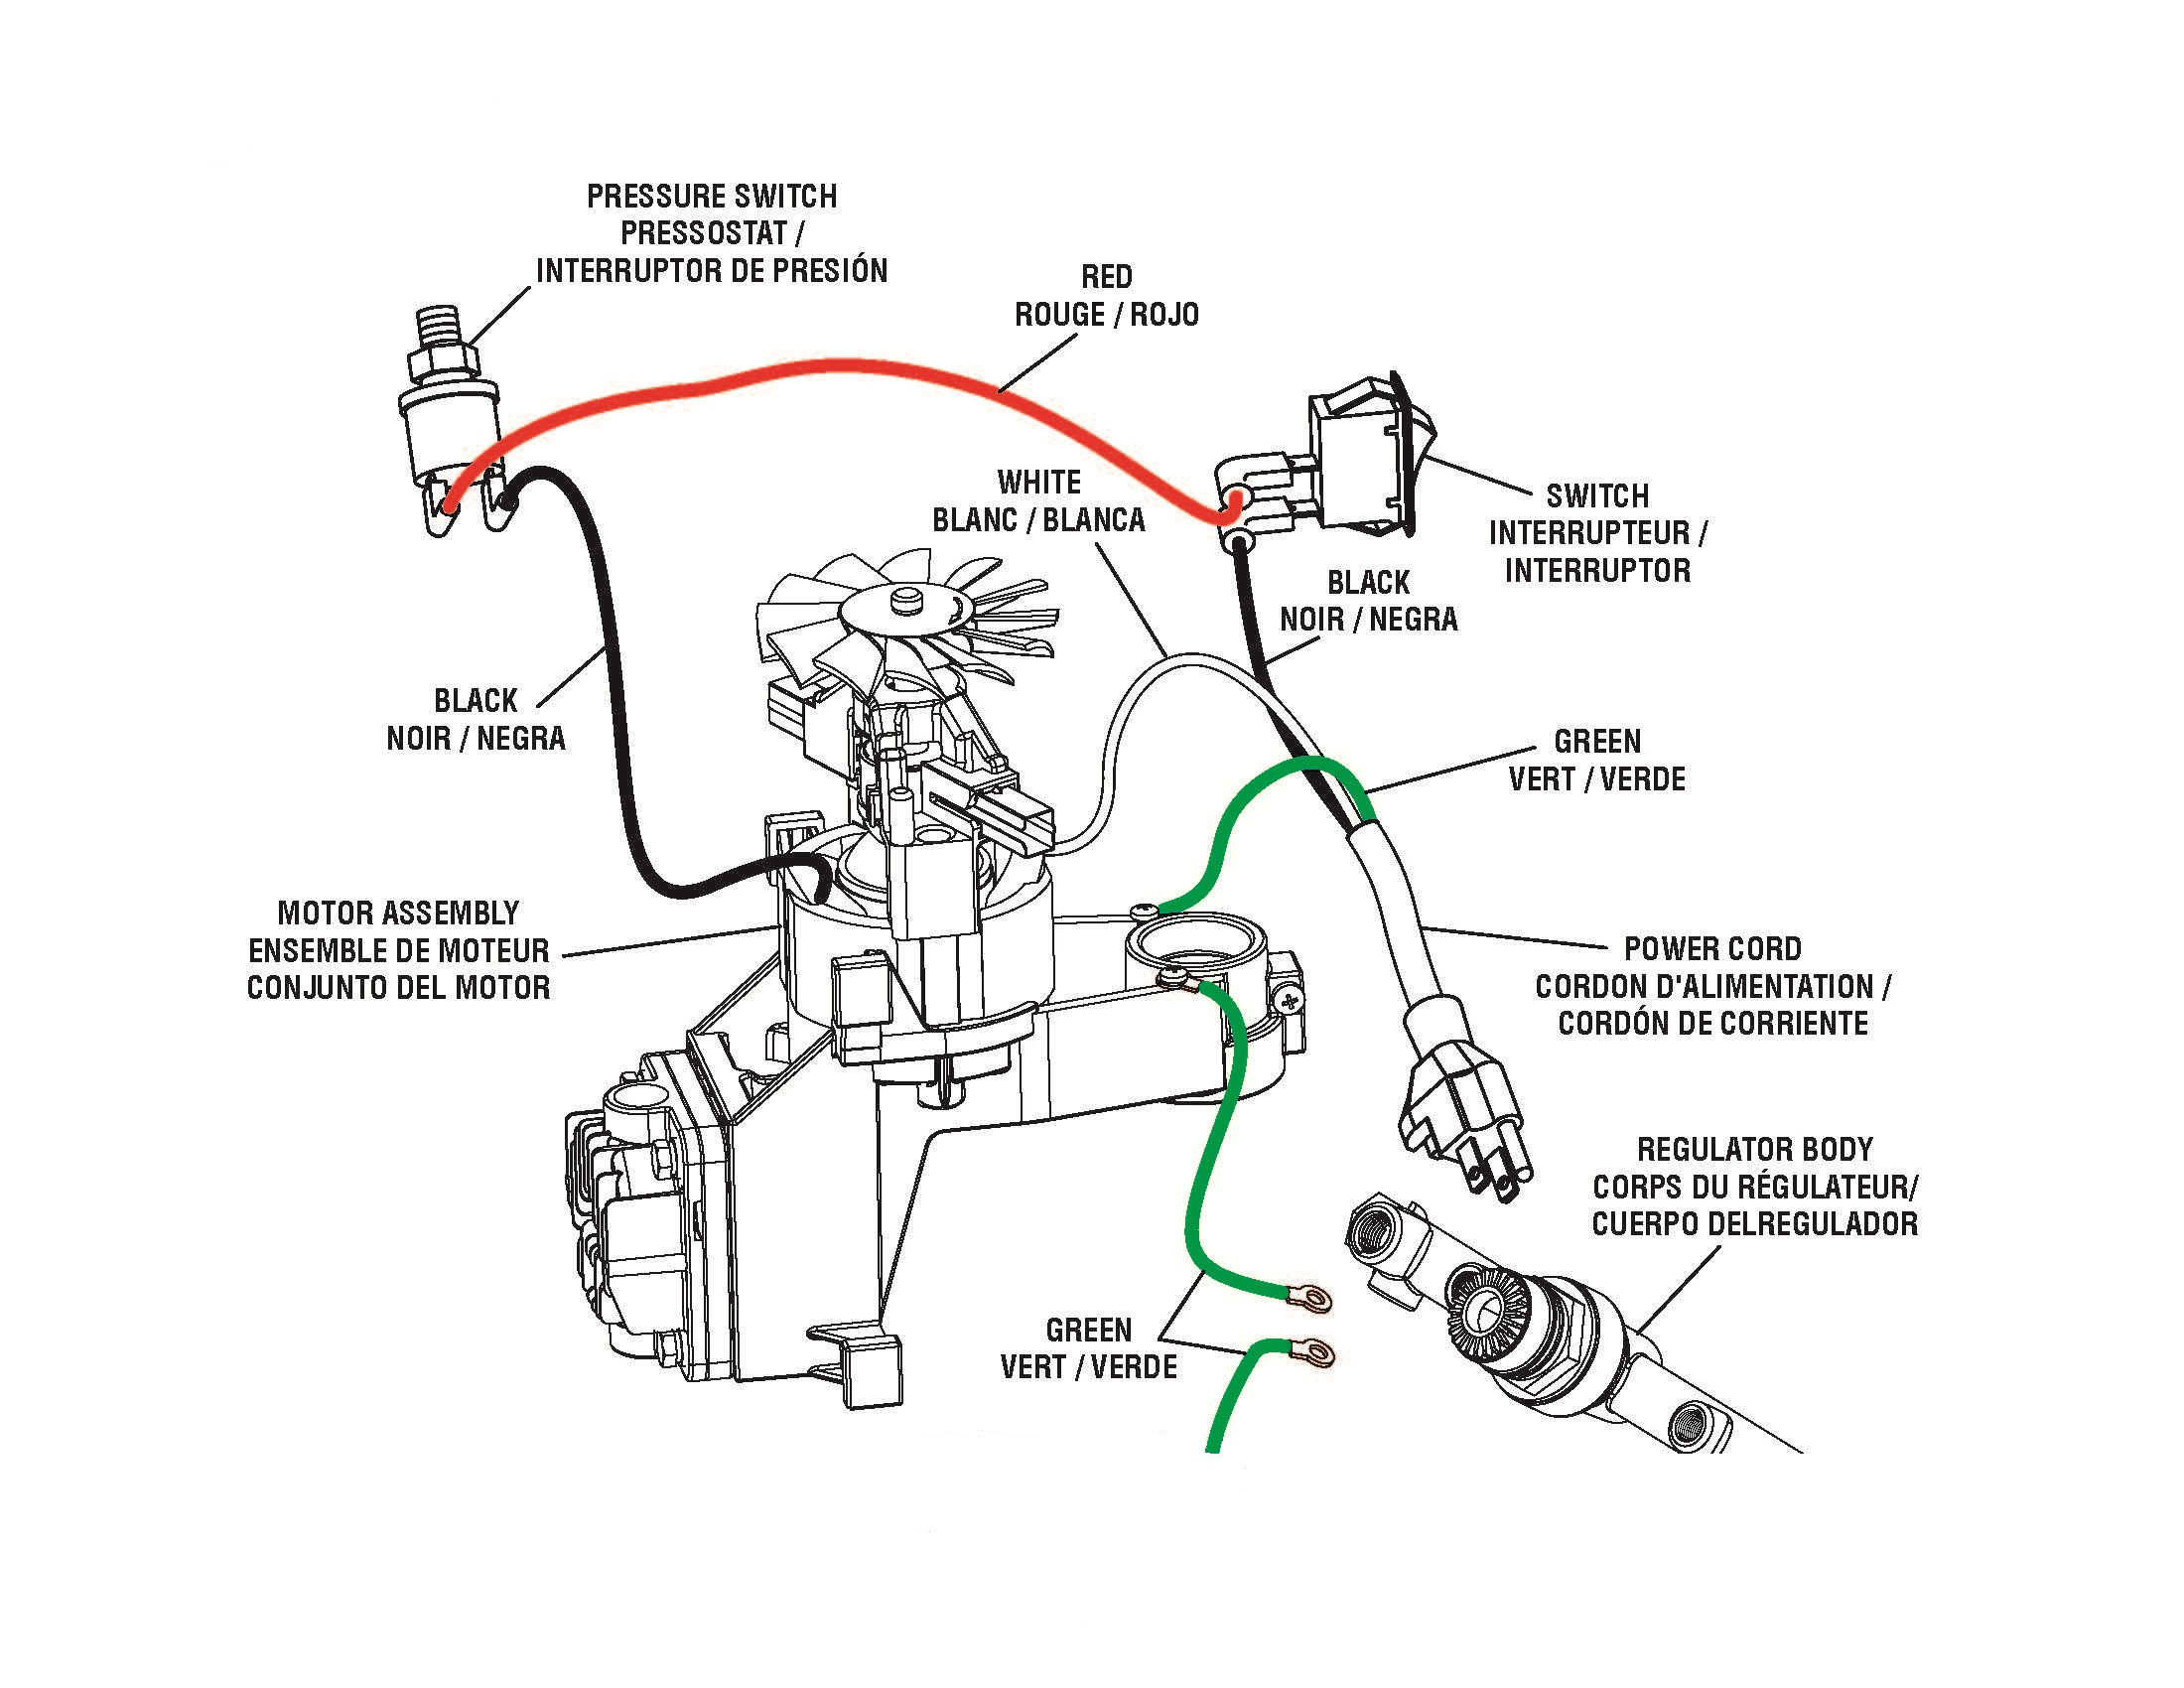 Diagram In Pictures Database Bostitch Air Compressor Wiring Diagram Just Download Or Read Wiring Diagram Online Casalamm Edu Mx